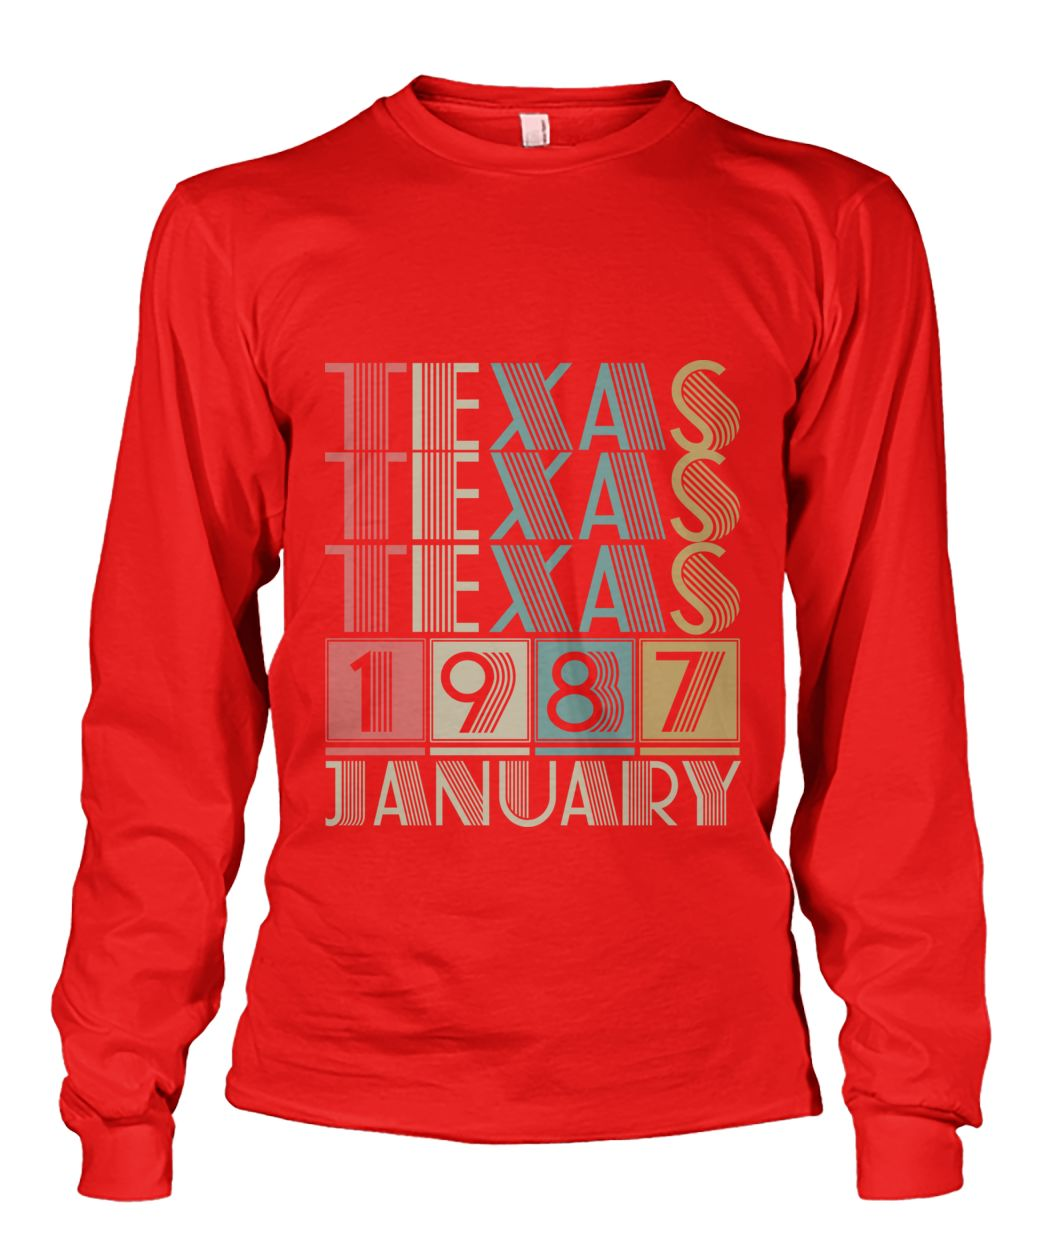 Born in Texas in January 1987 t shirt-Short Sleeves - TEEHOT.COM